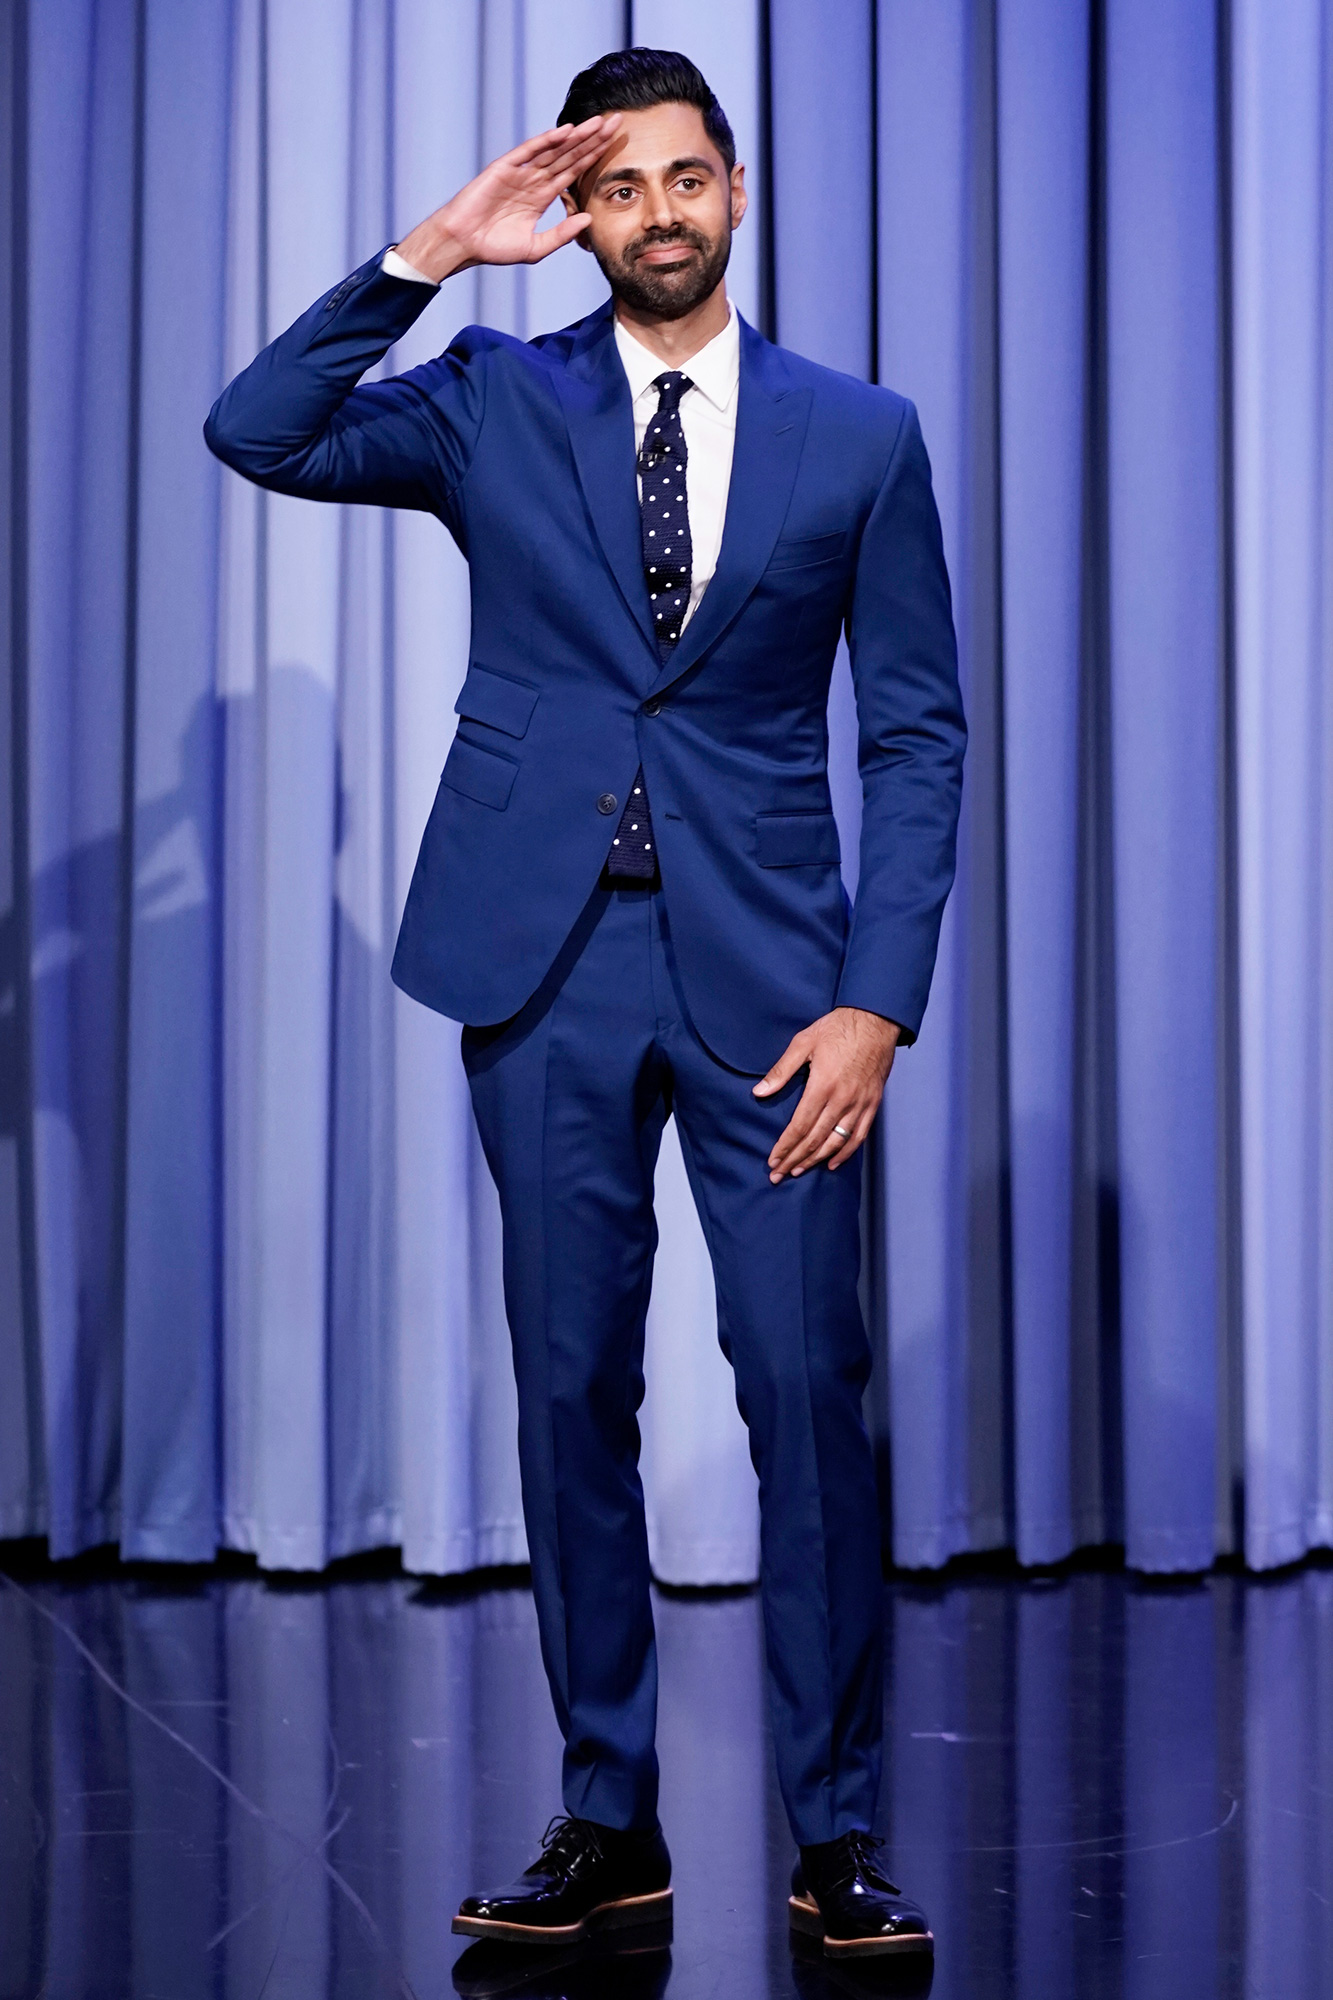 THE TONIGHT SHOW STARRING JIMMY FALLON -- Episode 1518 -- Pictured: Comedian Hasan Minhaj arrives on Monday, September 20, 2021